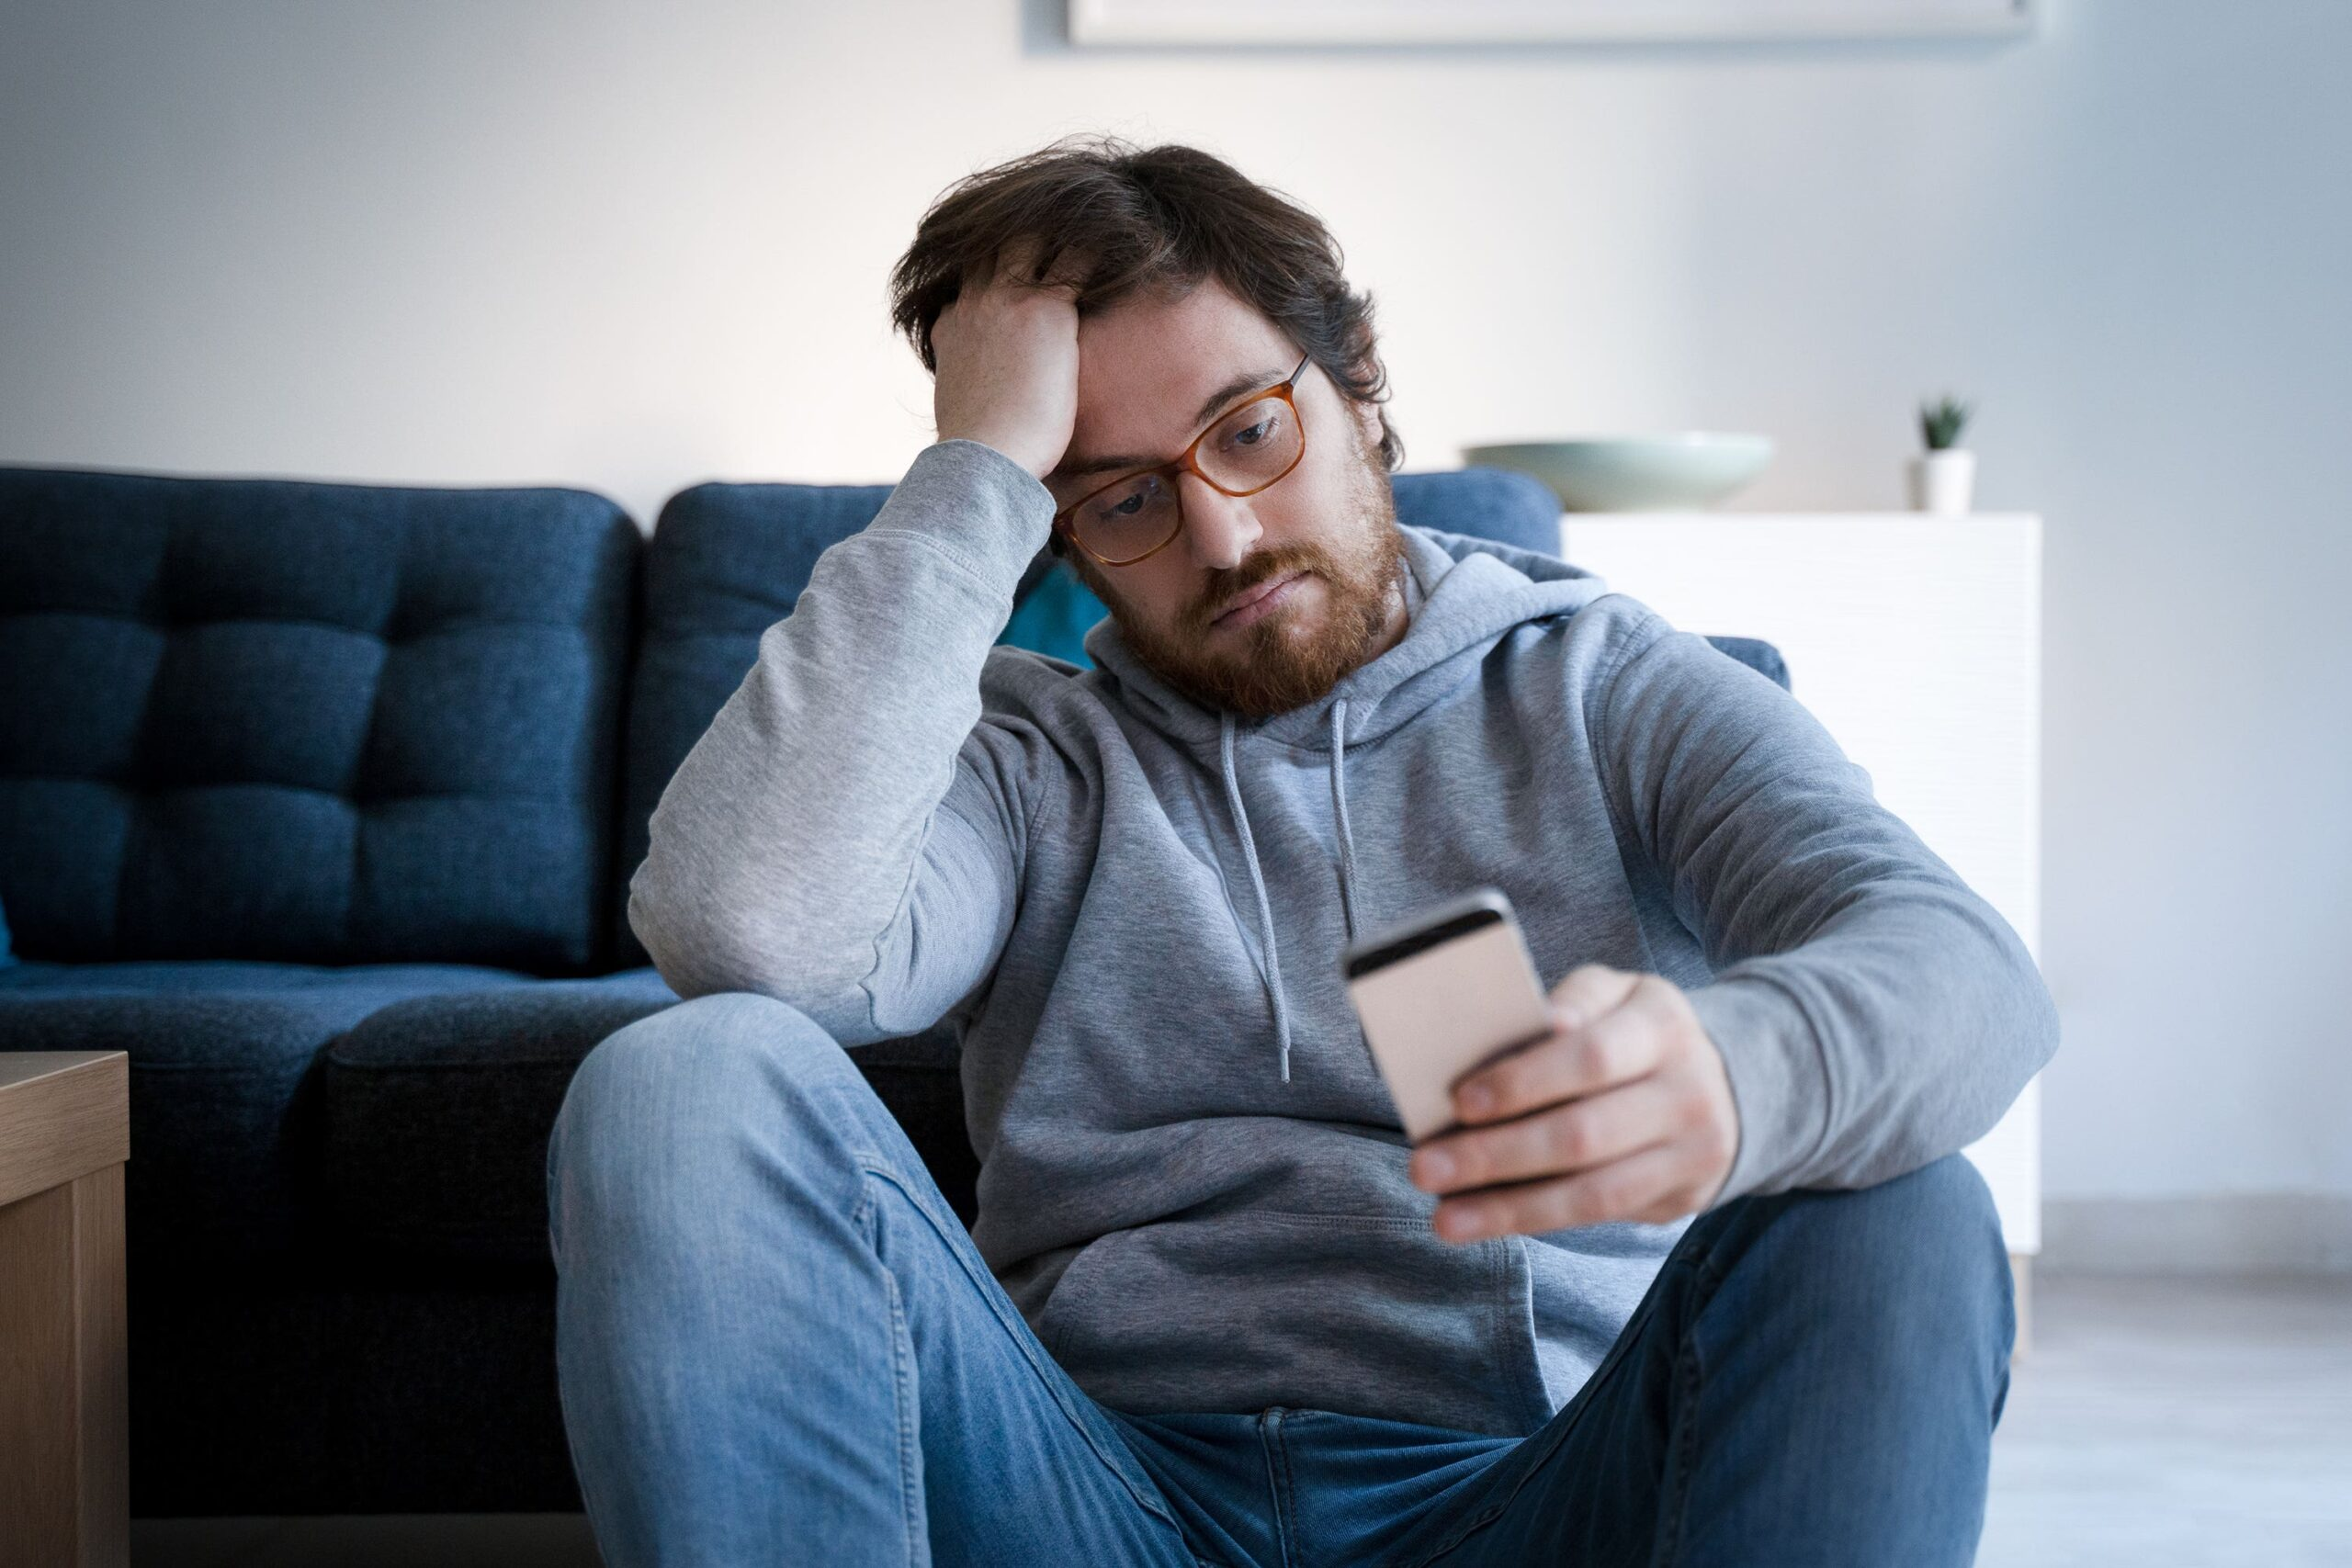 man looks stressed looking at phone scaled